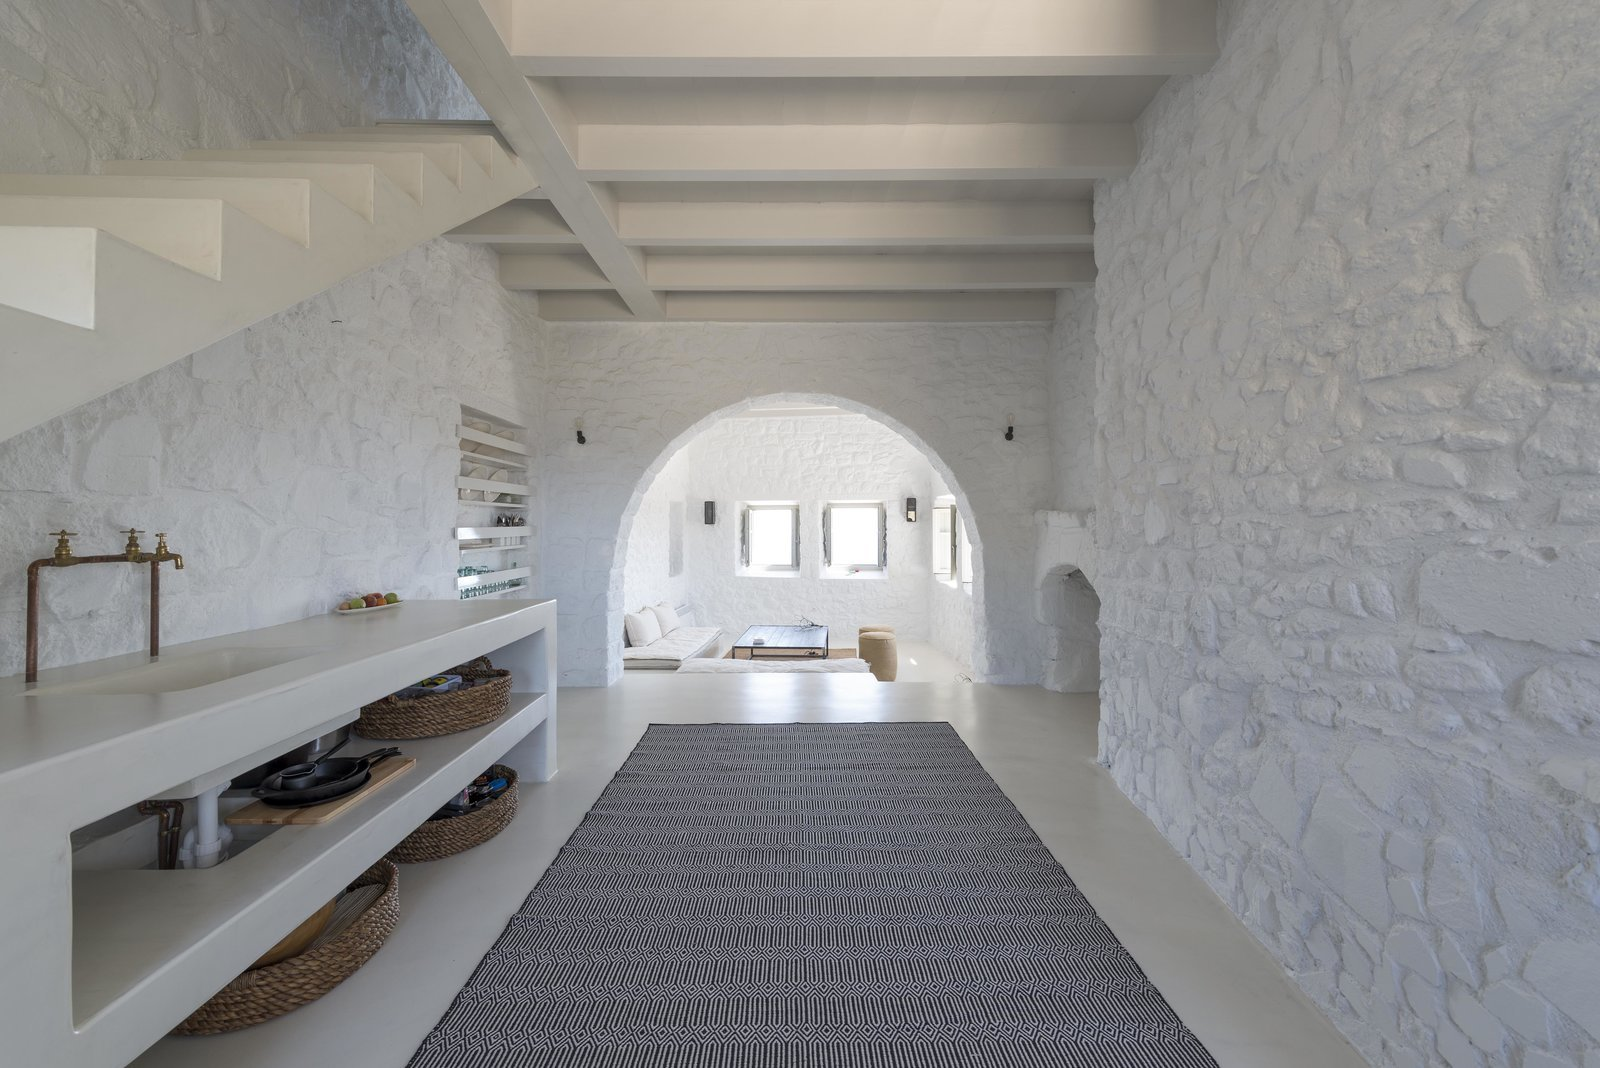 Kitchen, Wall Lighting, Rug Floor, and Open Cabinet Within this minimalist villa on the Greek island of Nisyros are vaulted ceilings, arched doorways, wood beams, white washed walls and clean, contemporary furniture in white, taupe, cream and coffee tones.  Photo 10 of 11 in Discover 10 Impressive Spaces With Arched Windows and Doors